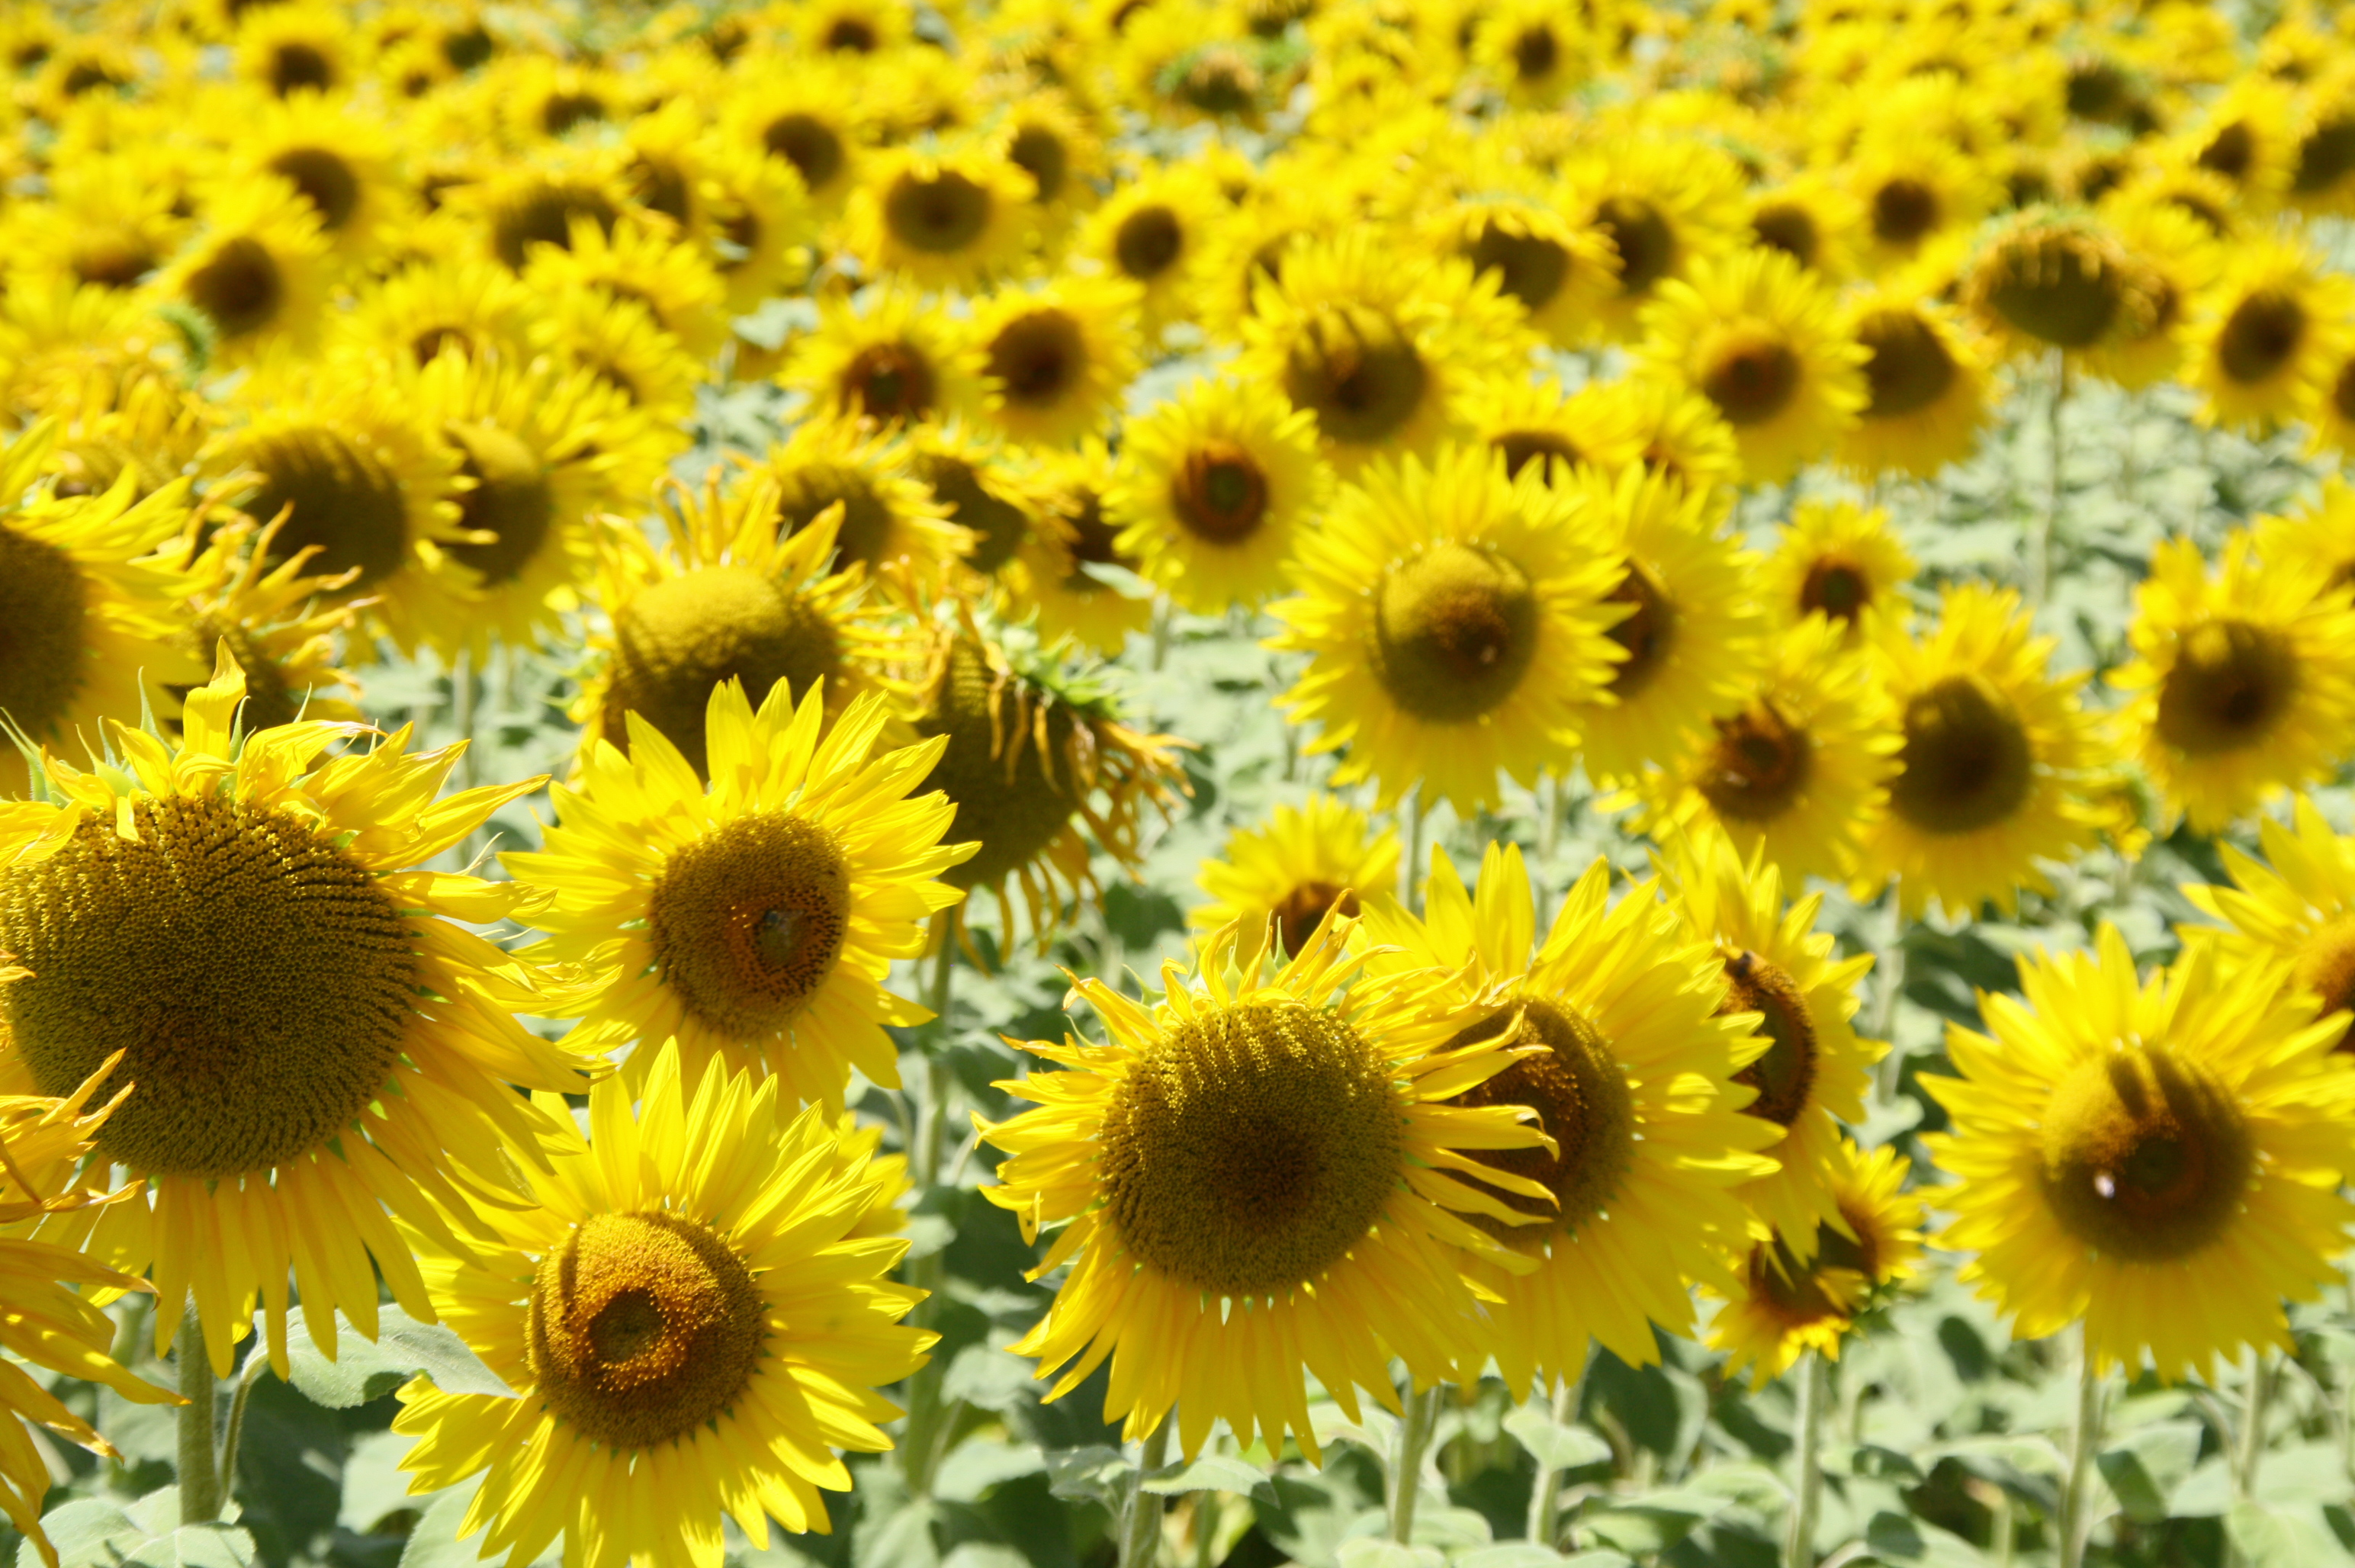 Umbrian sunflowers.JPG